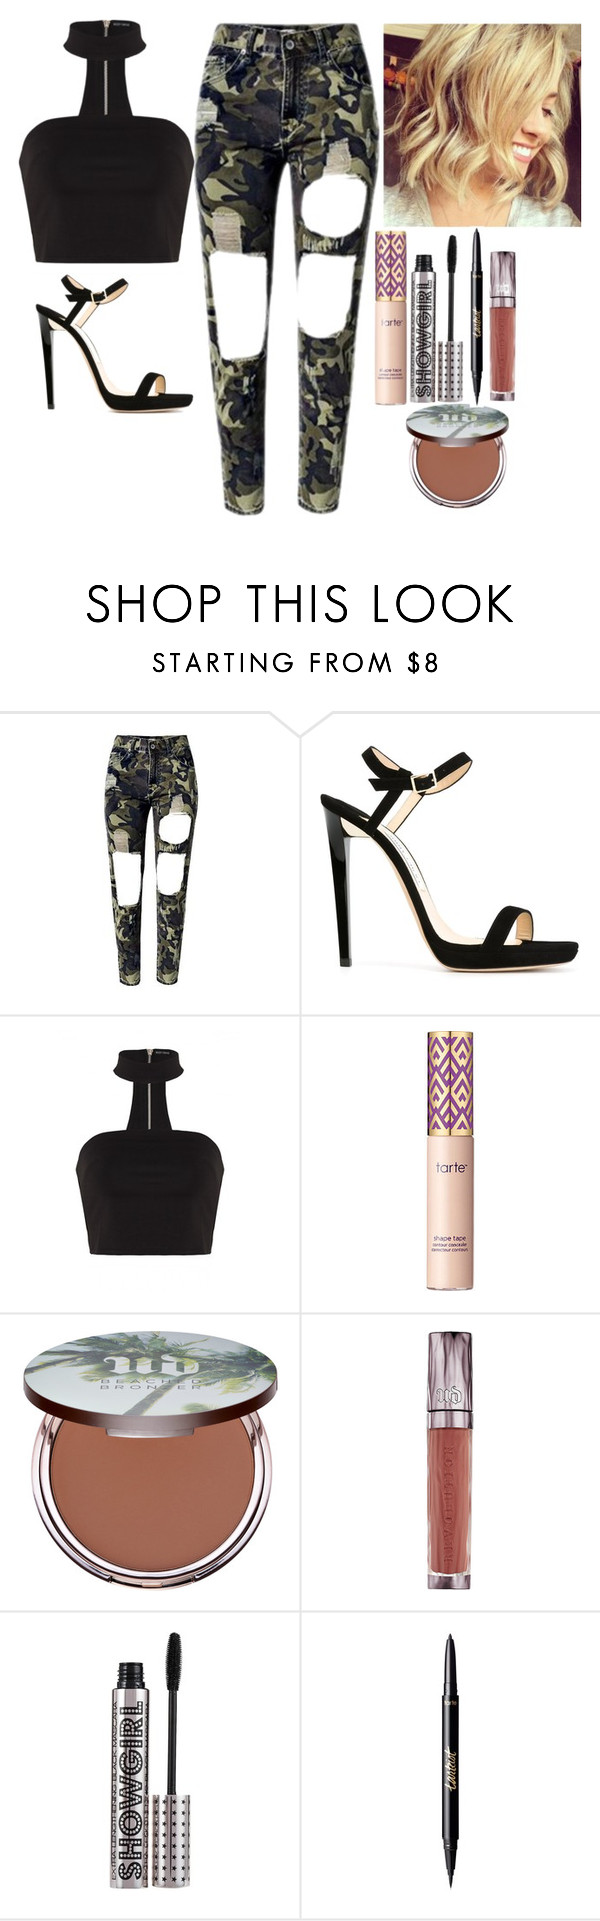 """""""Untitled #6567"""" by kimboloveniallhoran ❤ liked on Polyvore featuring Jimmy Choo, tarte, Urban Decay and Barry M"""